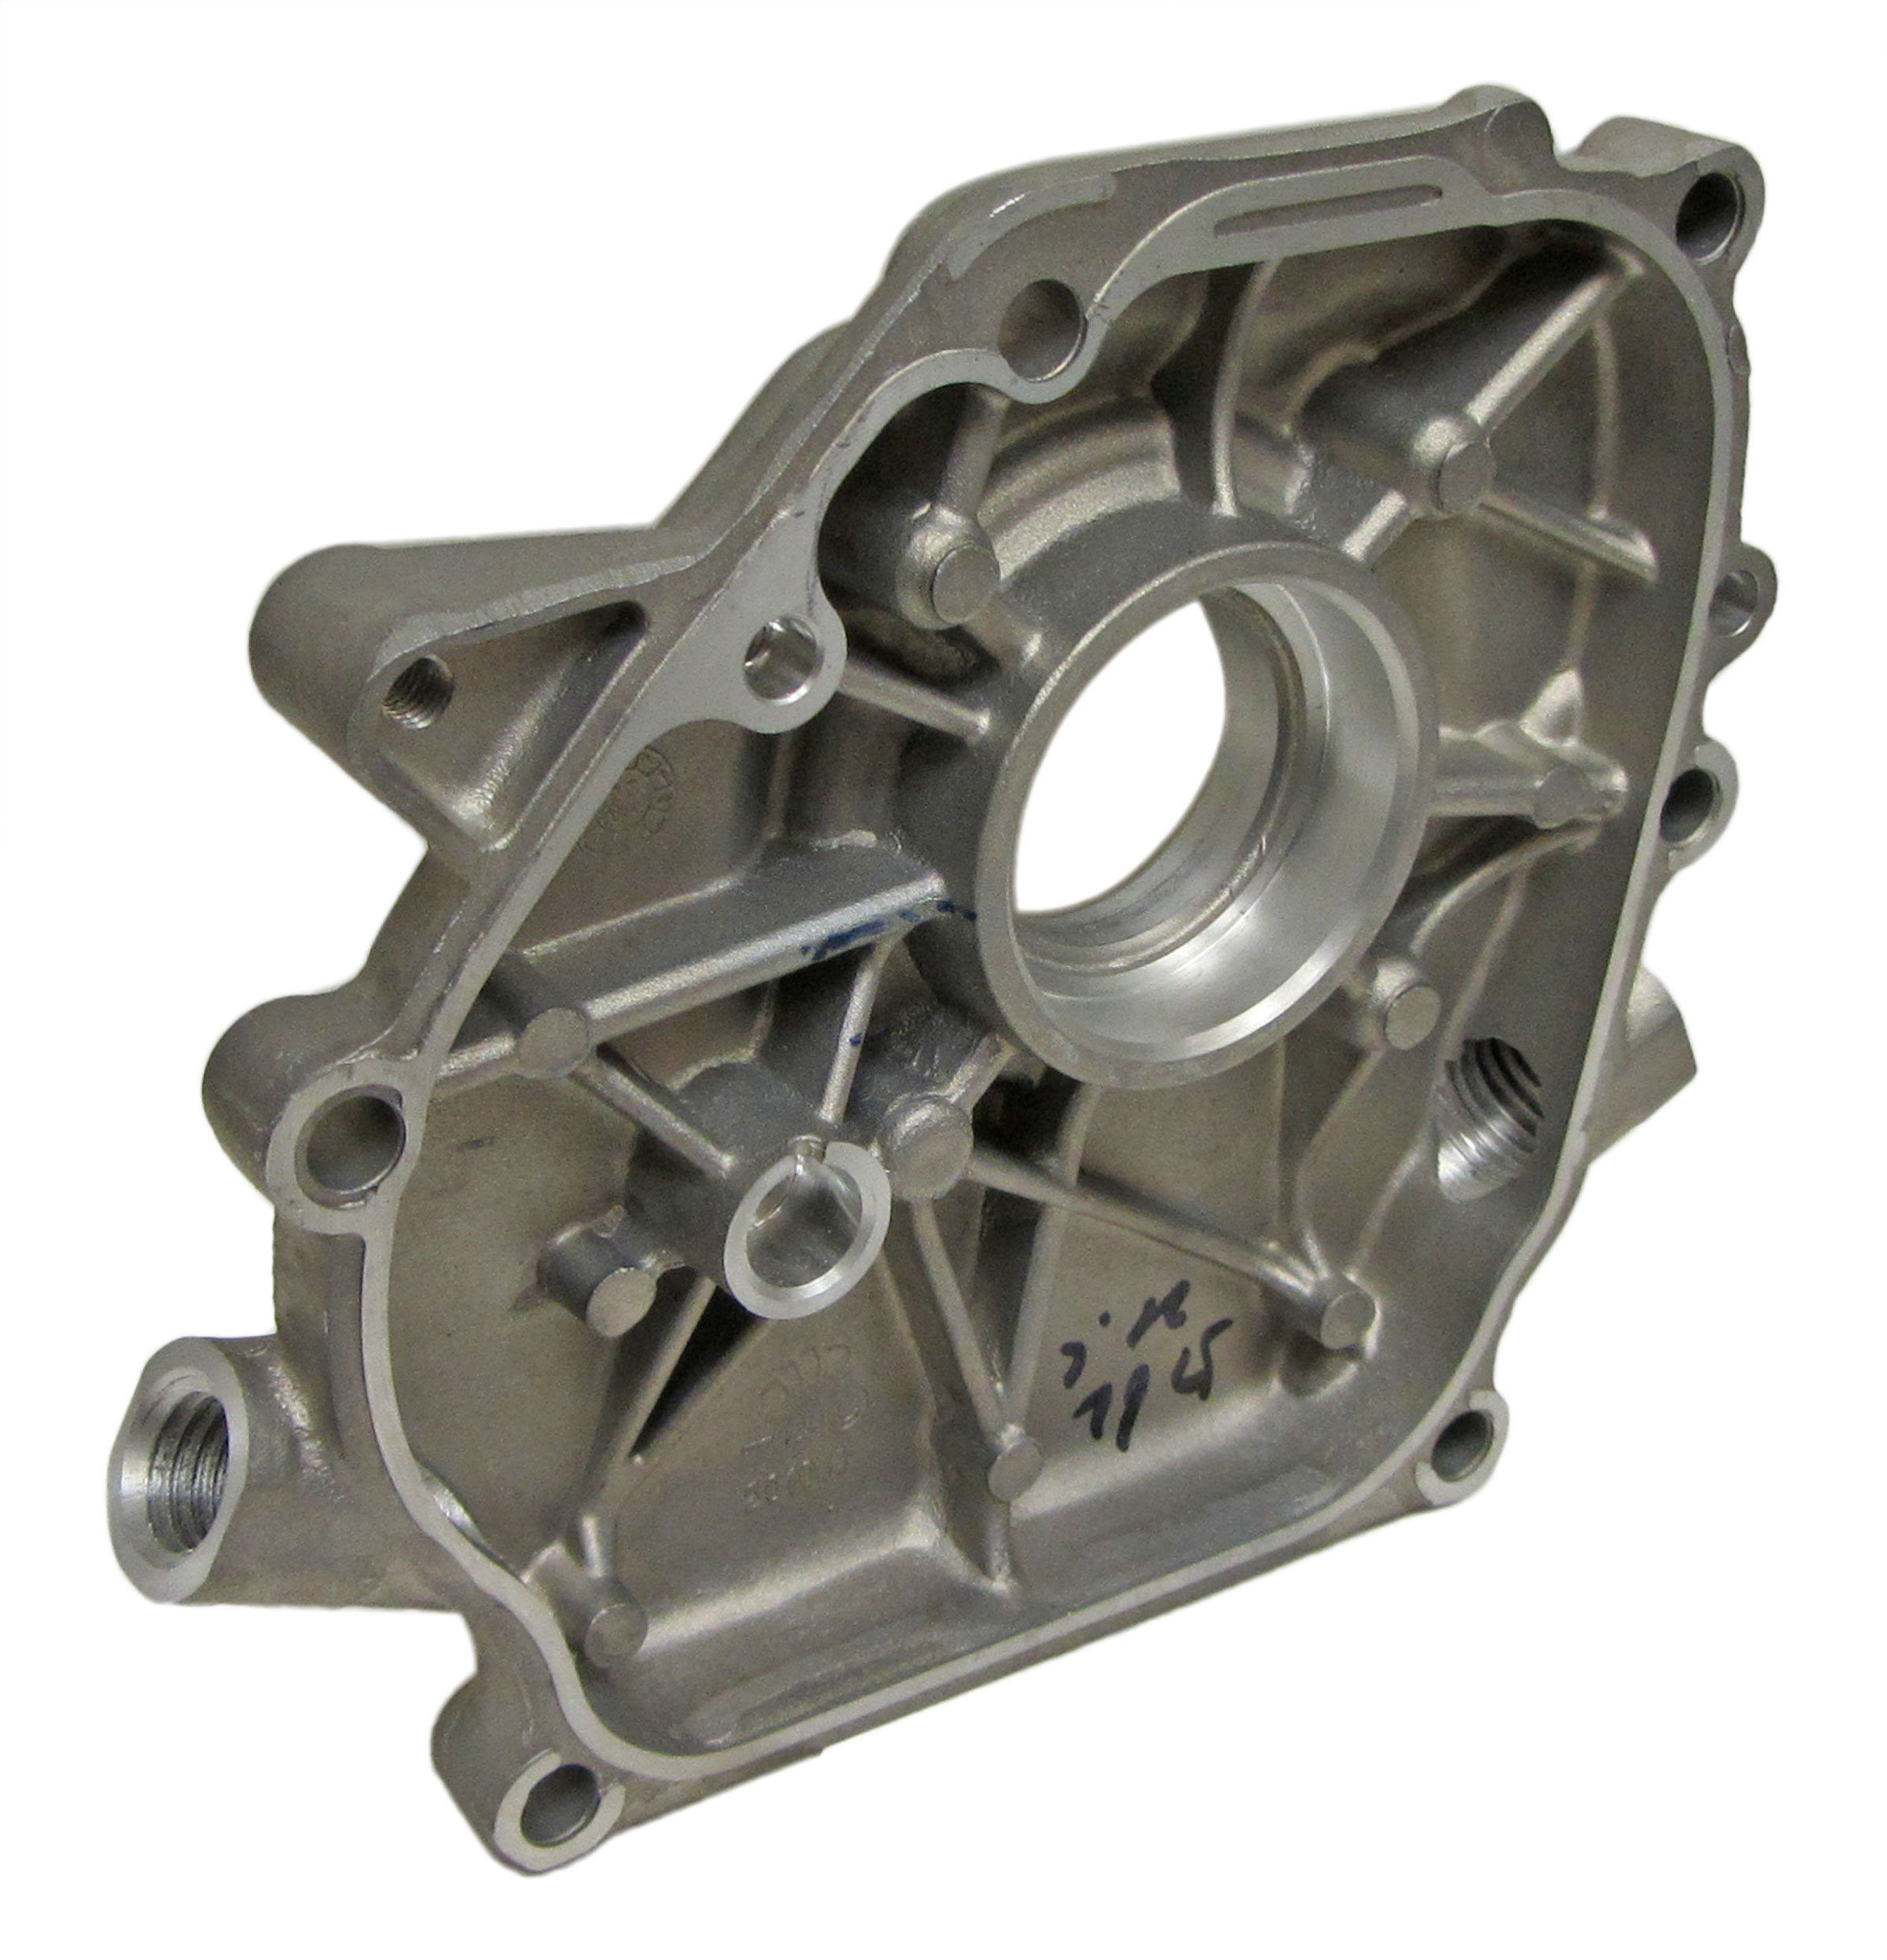 Crankcase (Sidecover) for 6 5HP Clone / GX200 Engine | 711265 | RLV 1265 |  BMI Karts And Parts